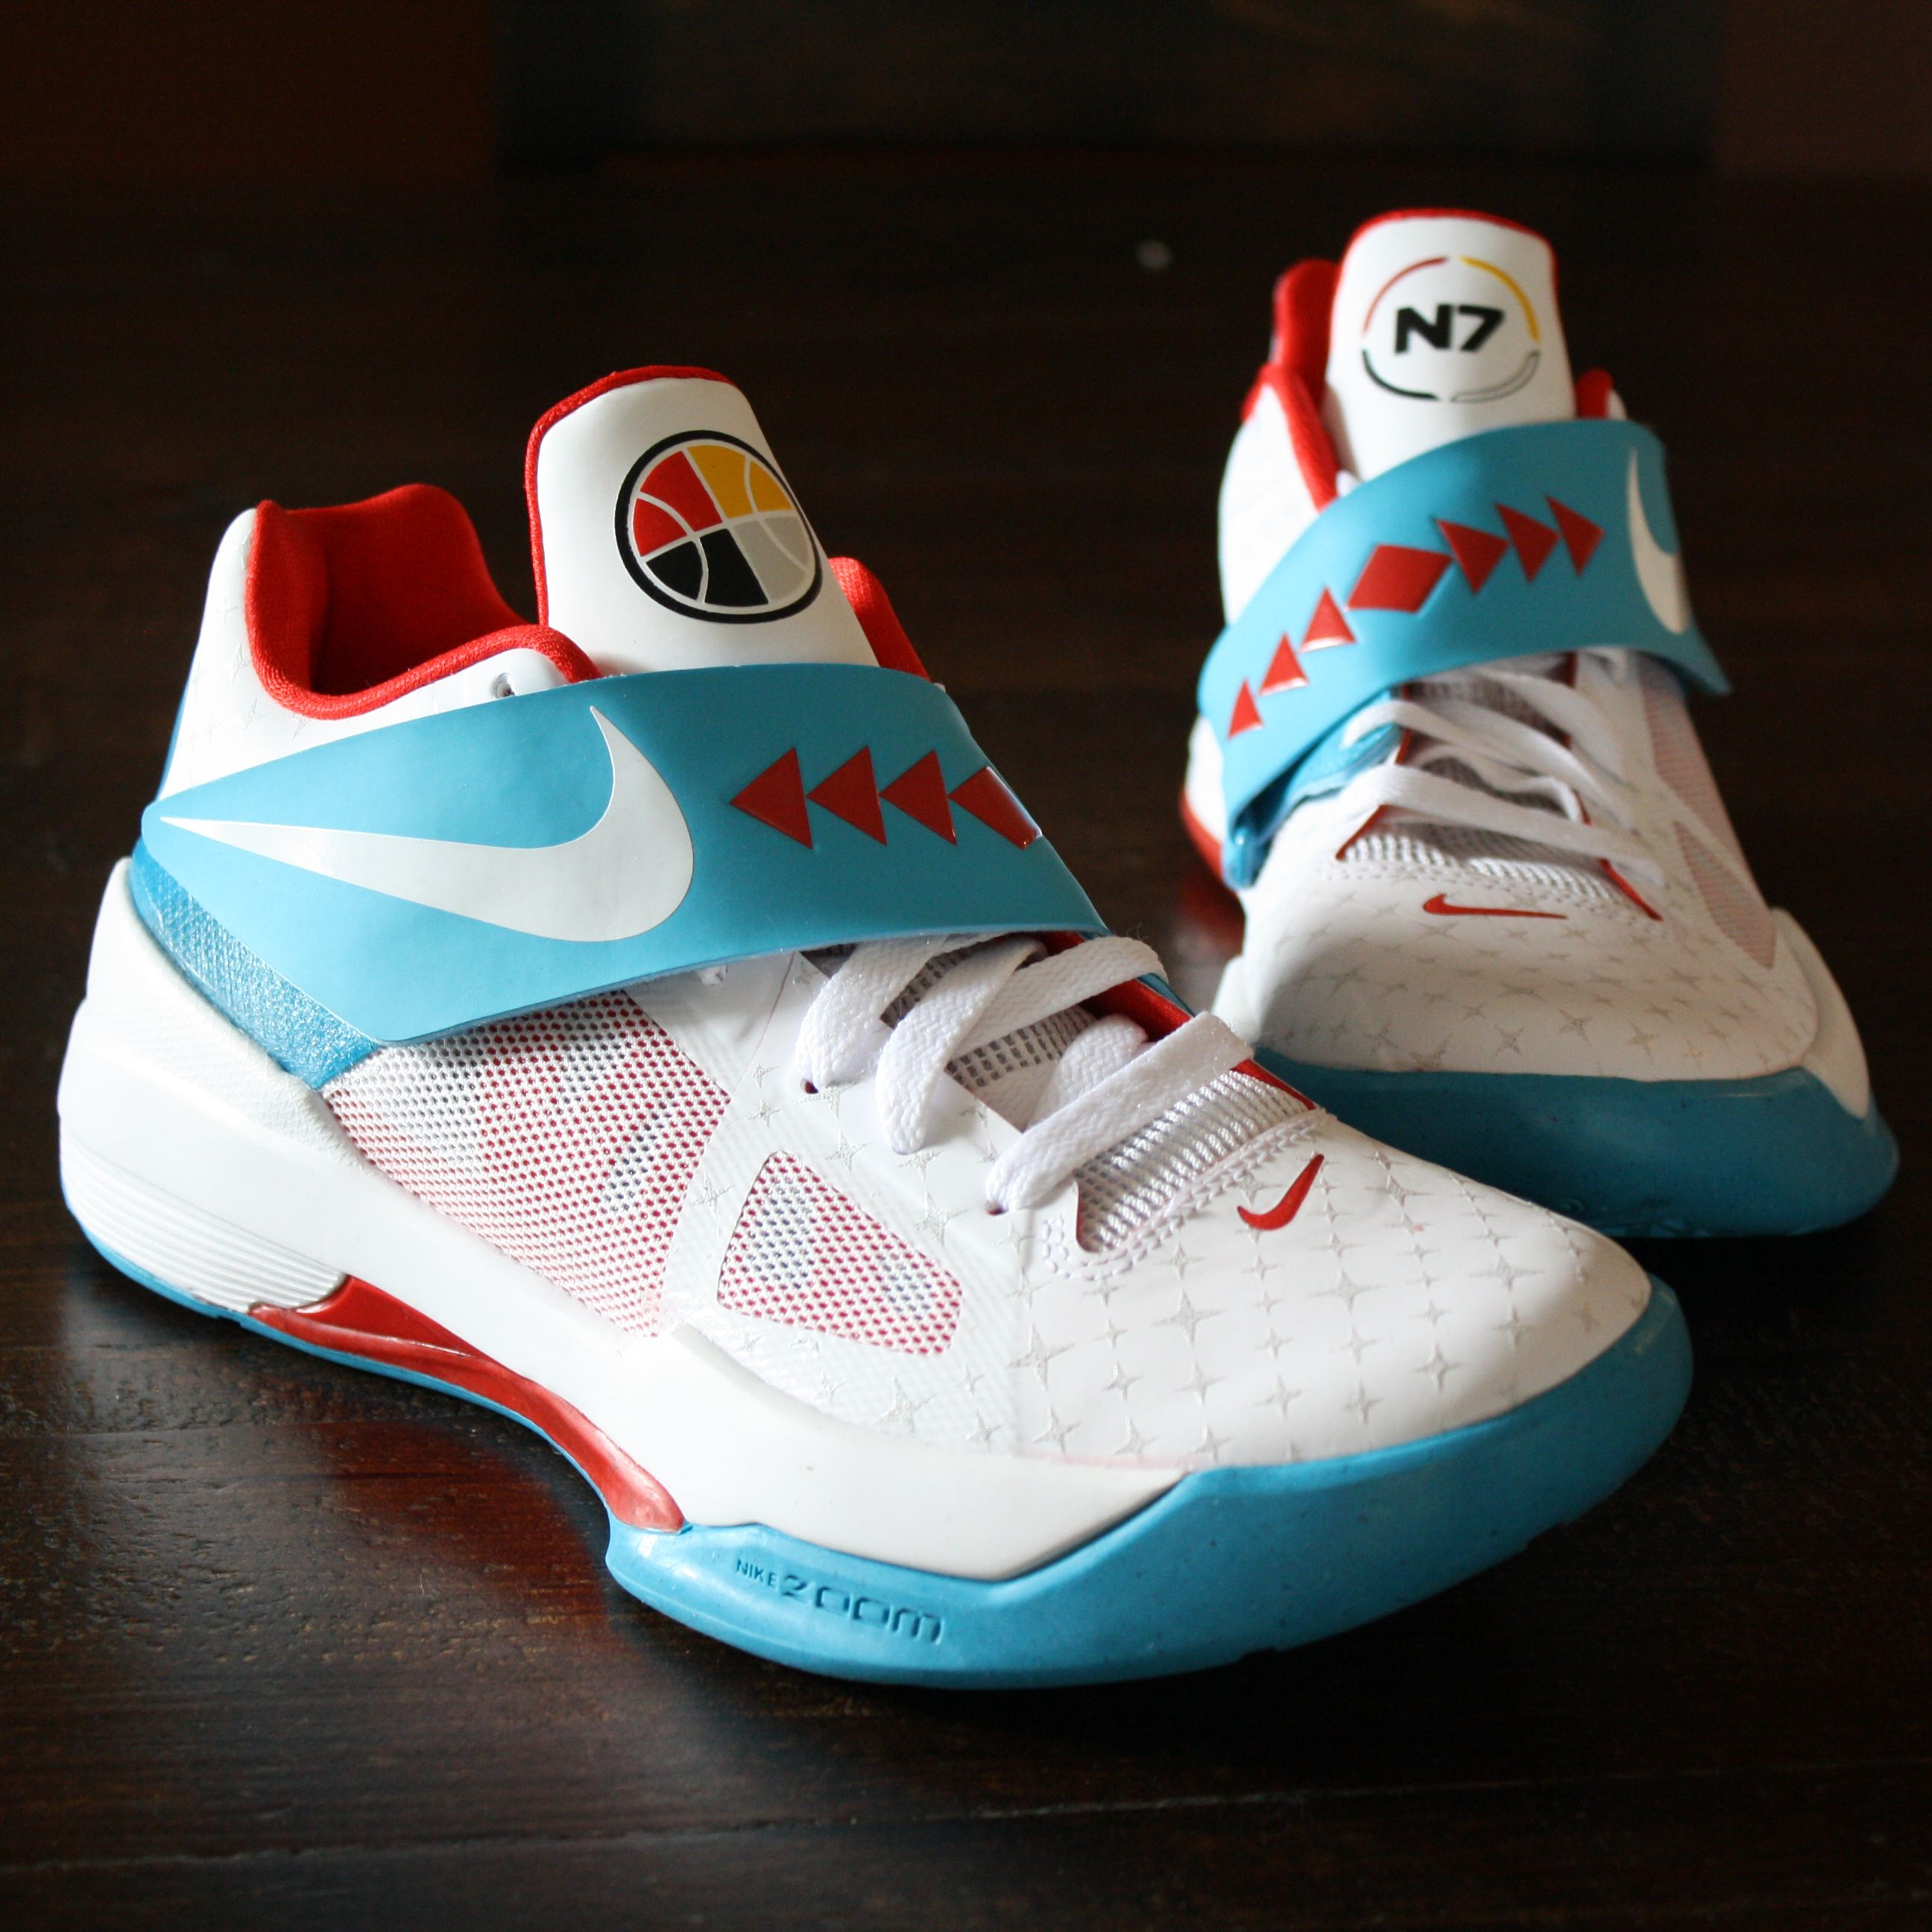 new products 2c276 b58c3 Nike KDs - Boys Sneakers - But if the shoe fits, wear it! Another outlet  find.